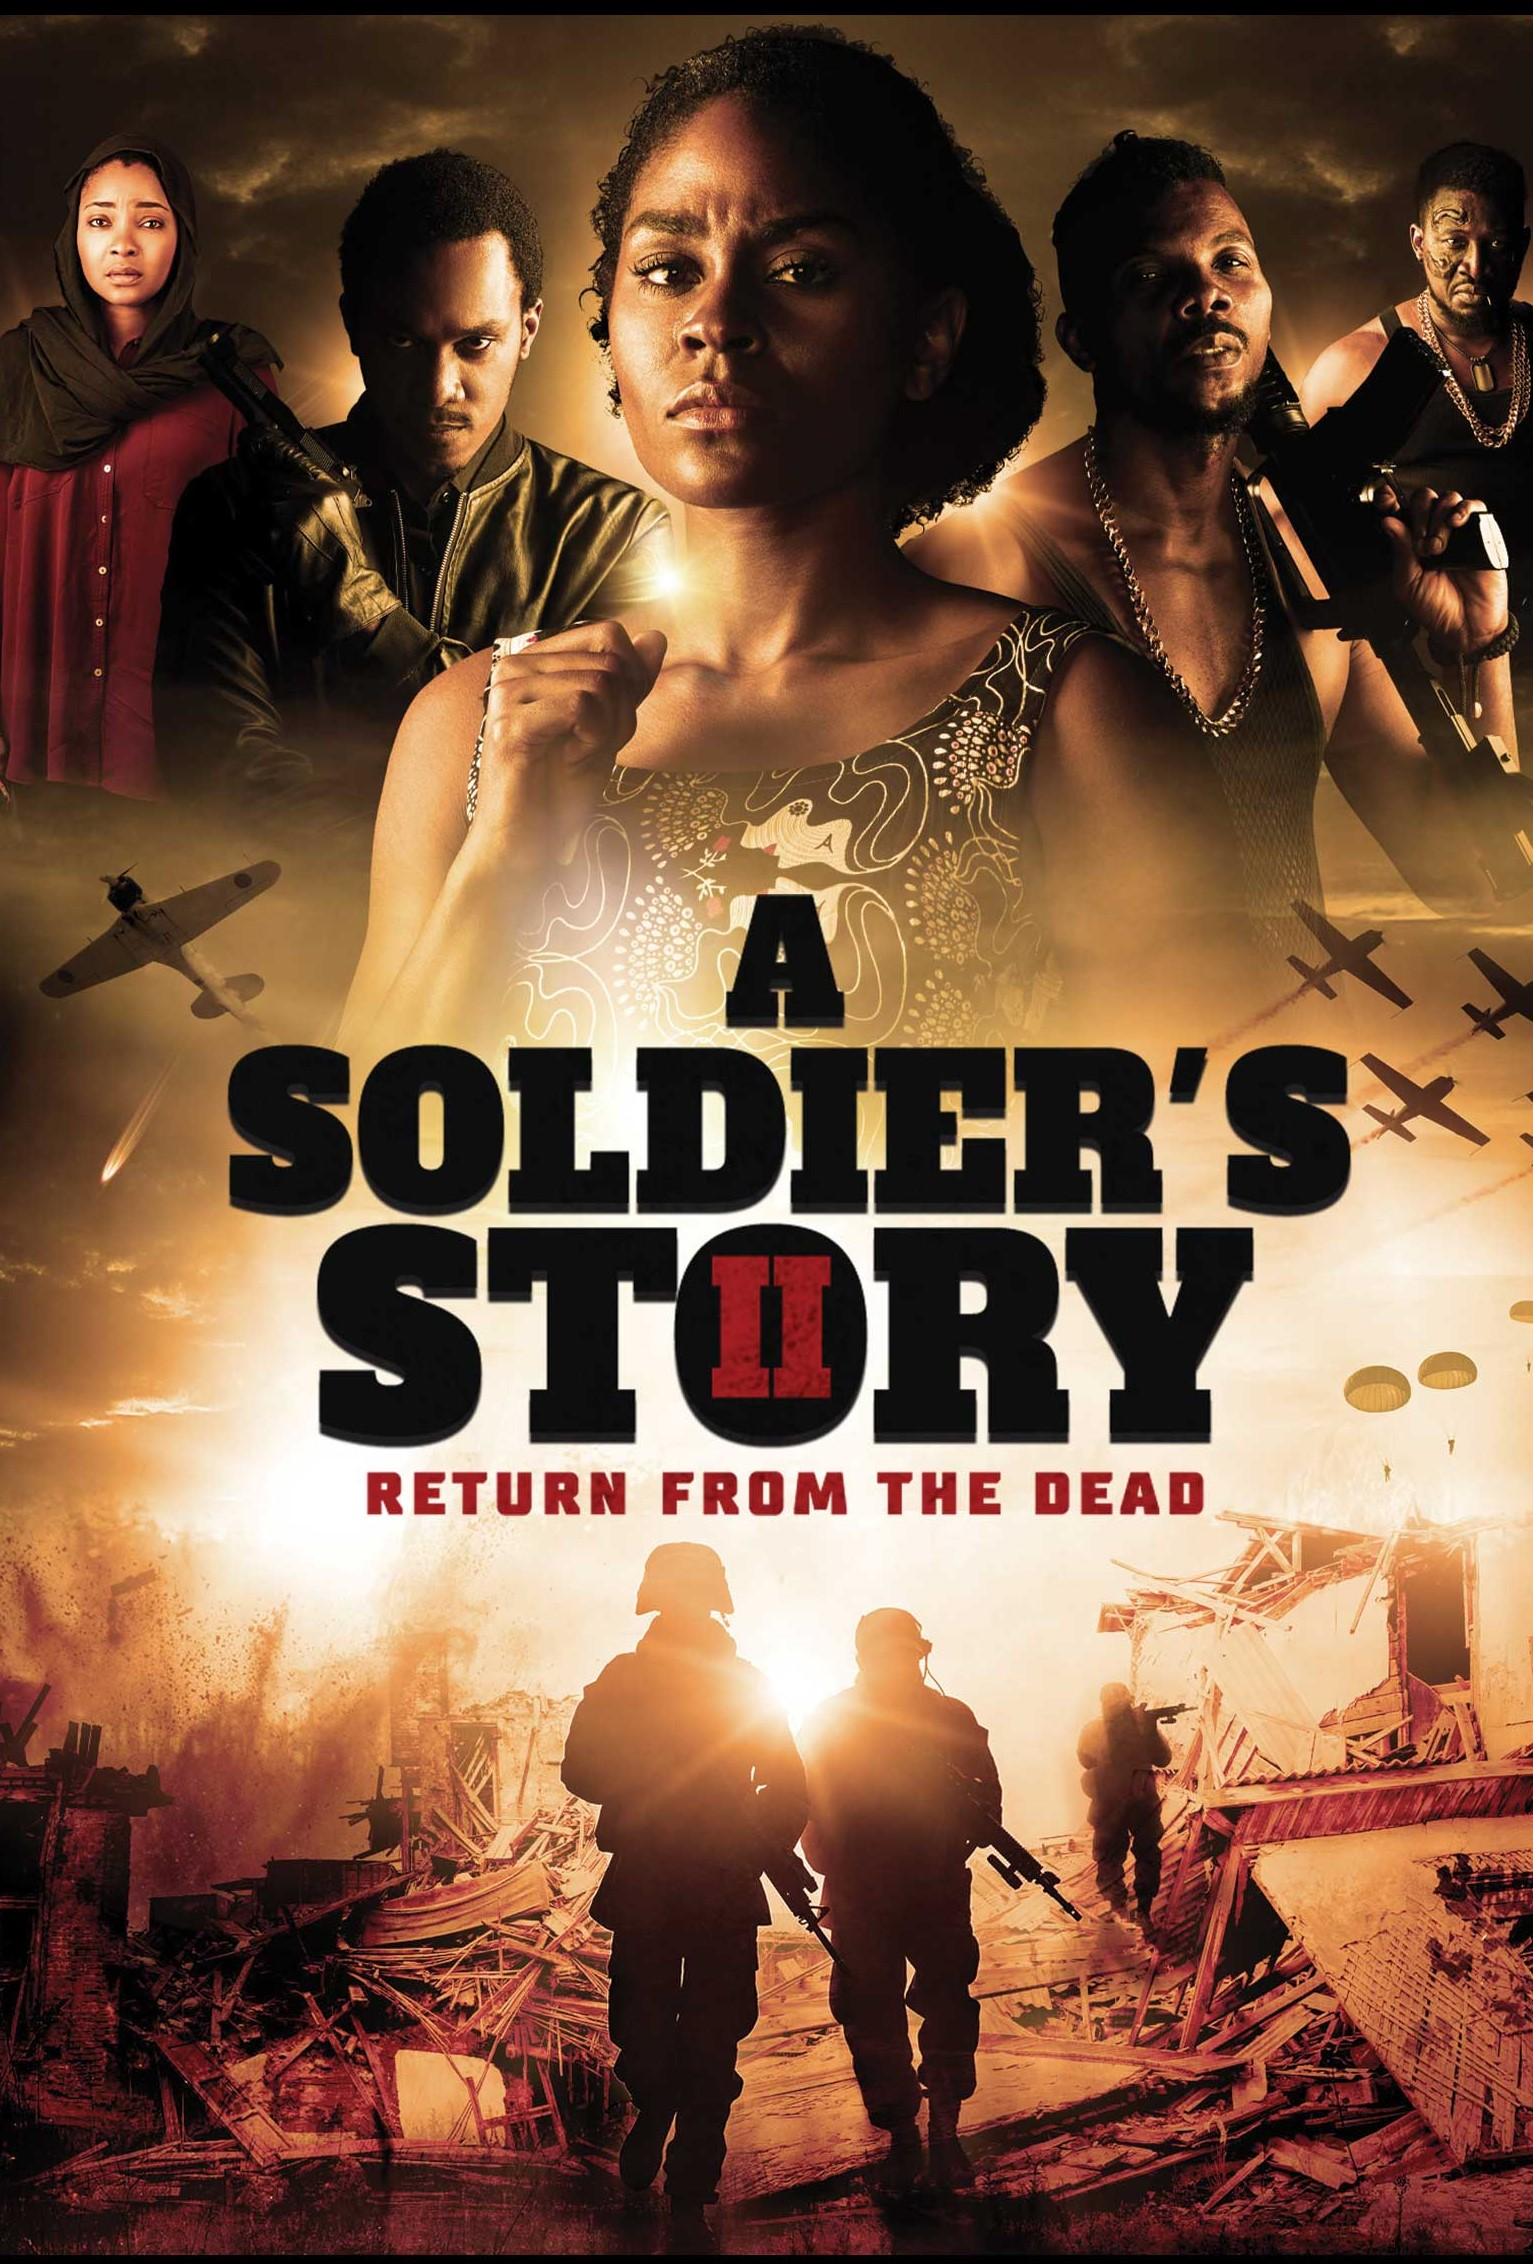 A Soldier's Story 2: Return from the Dead hd on soap2day